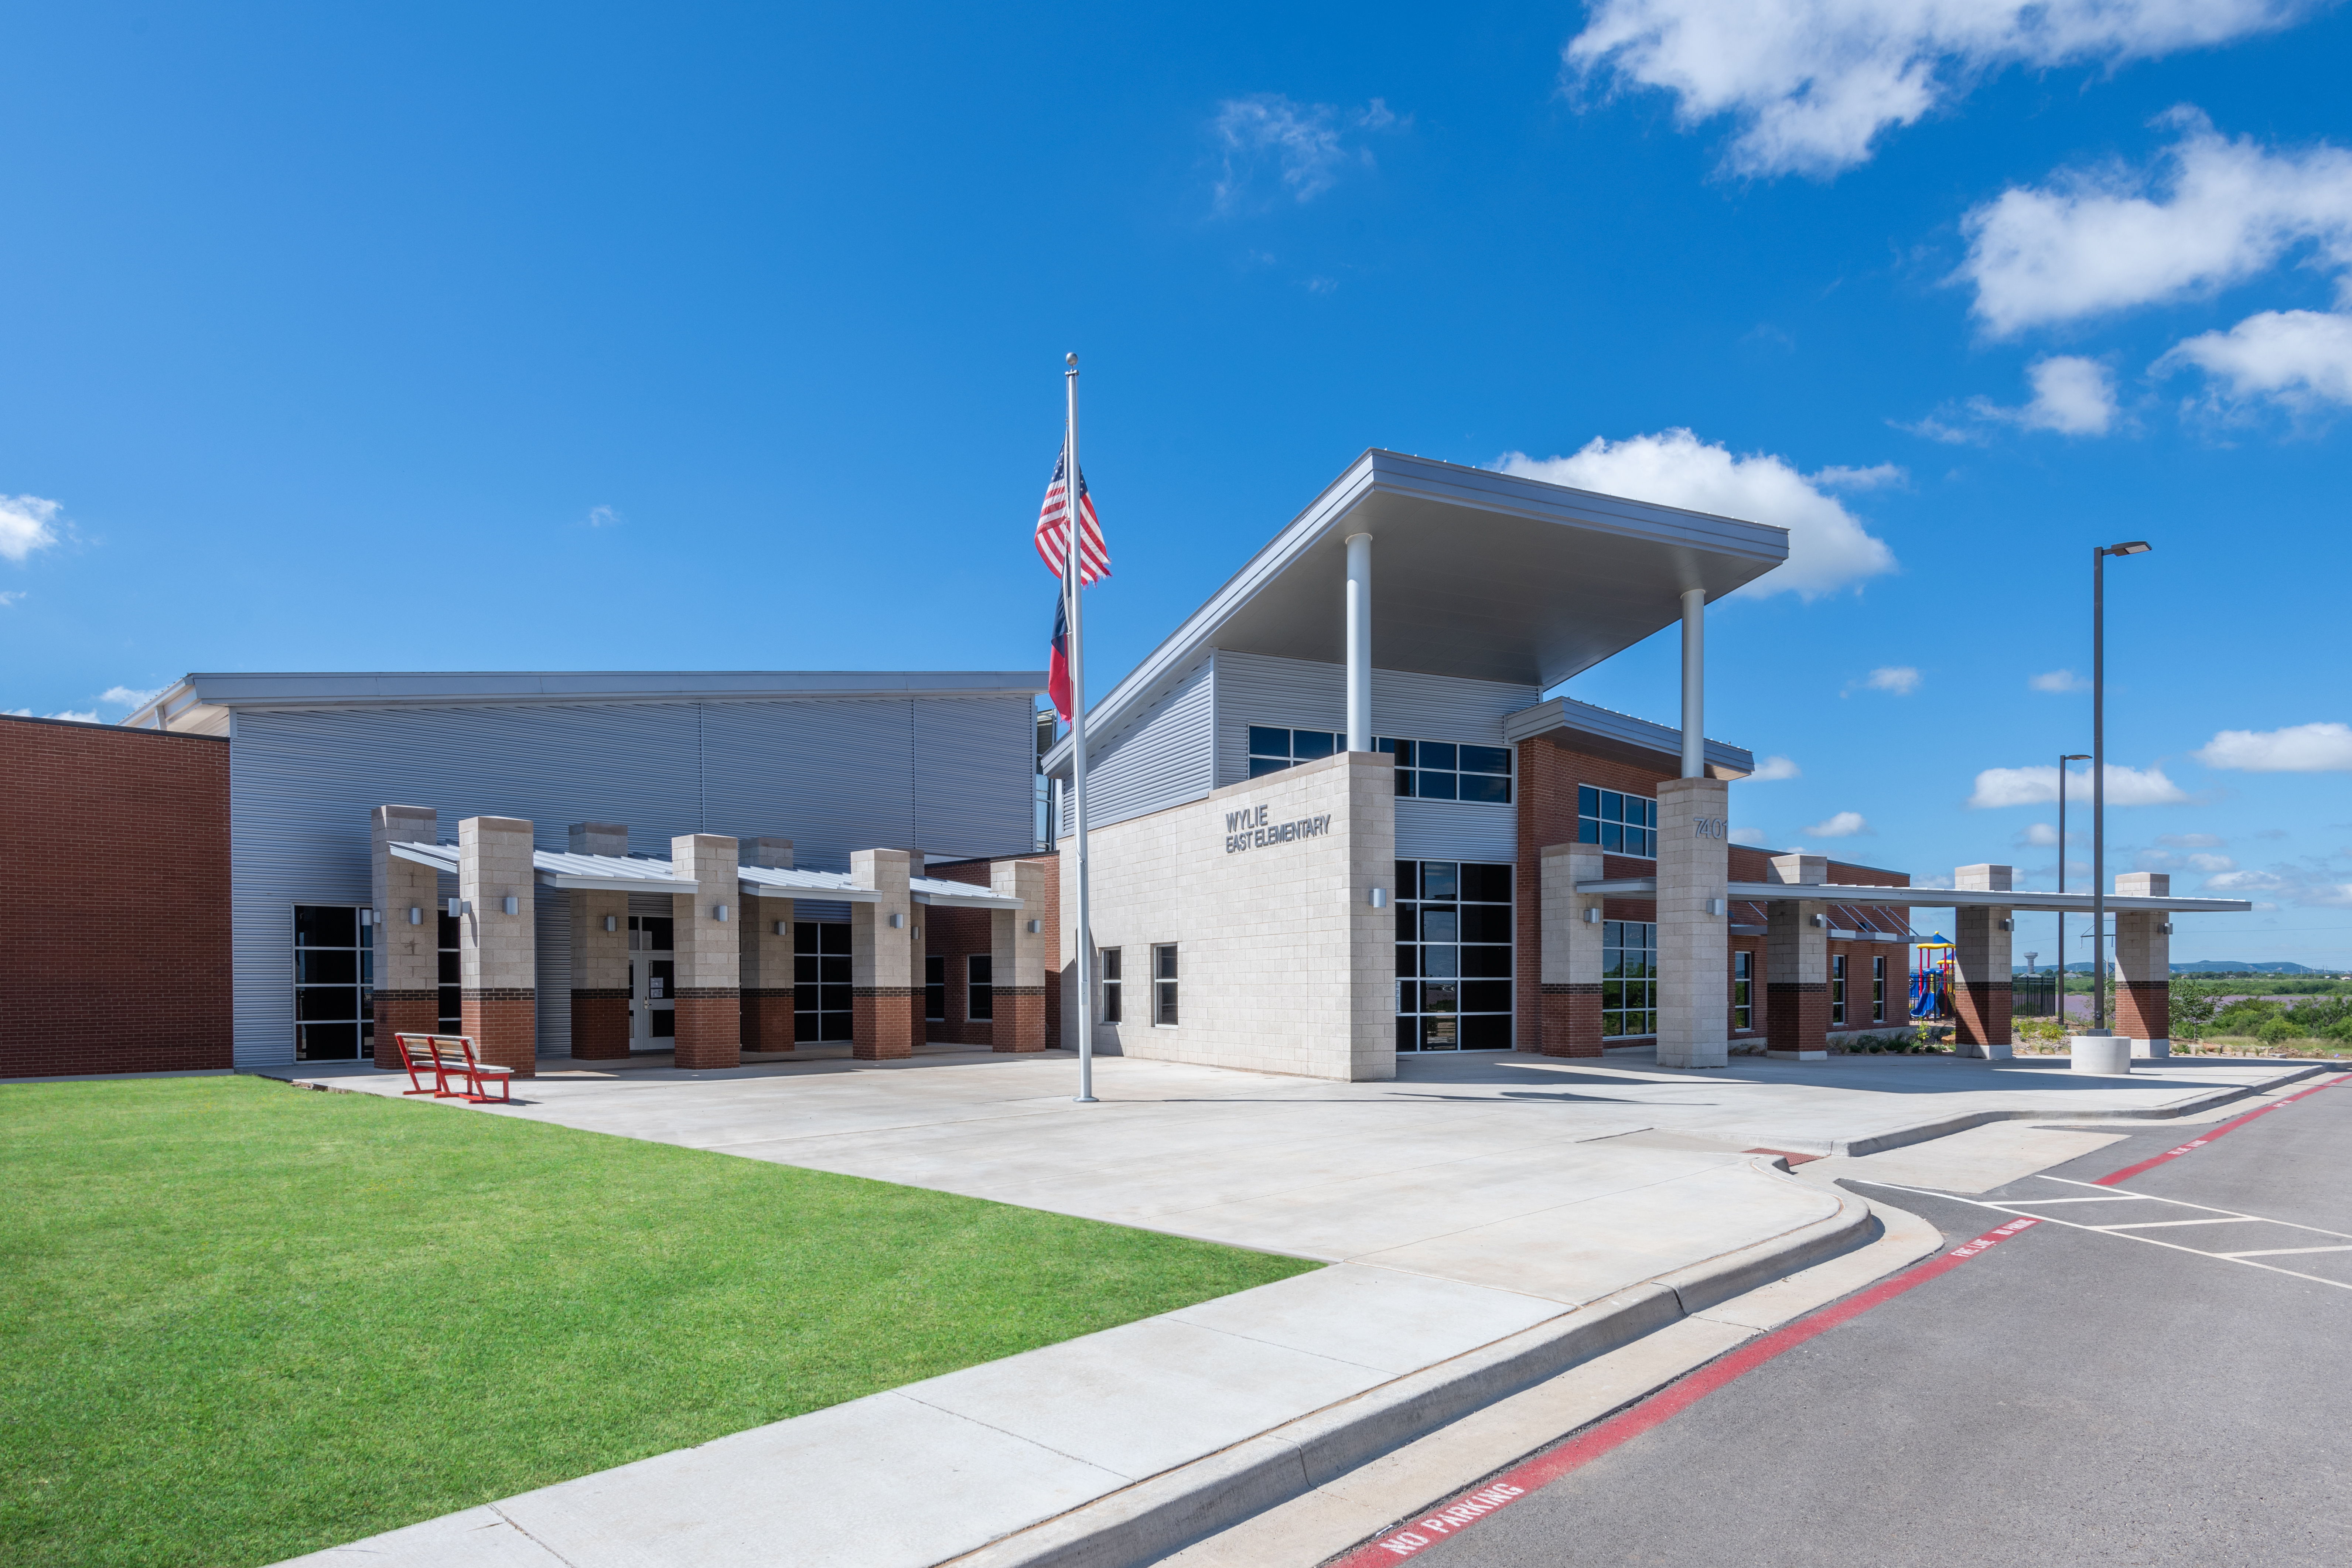 Wylie East Elementary School_HR-4472